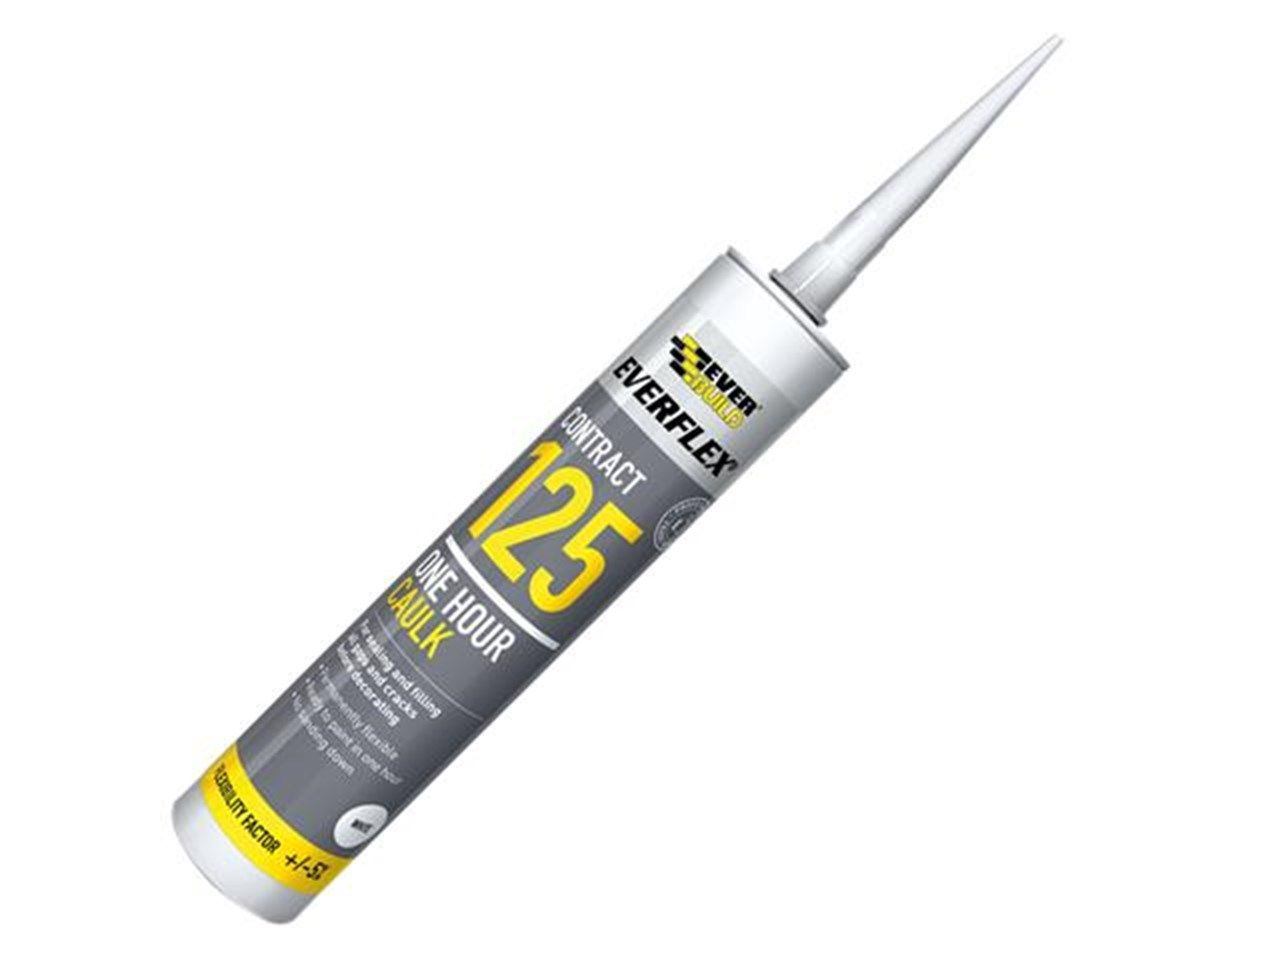 EVERBUILD 125 CAULK WHITE C4 1 HOUR